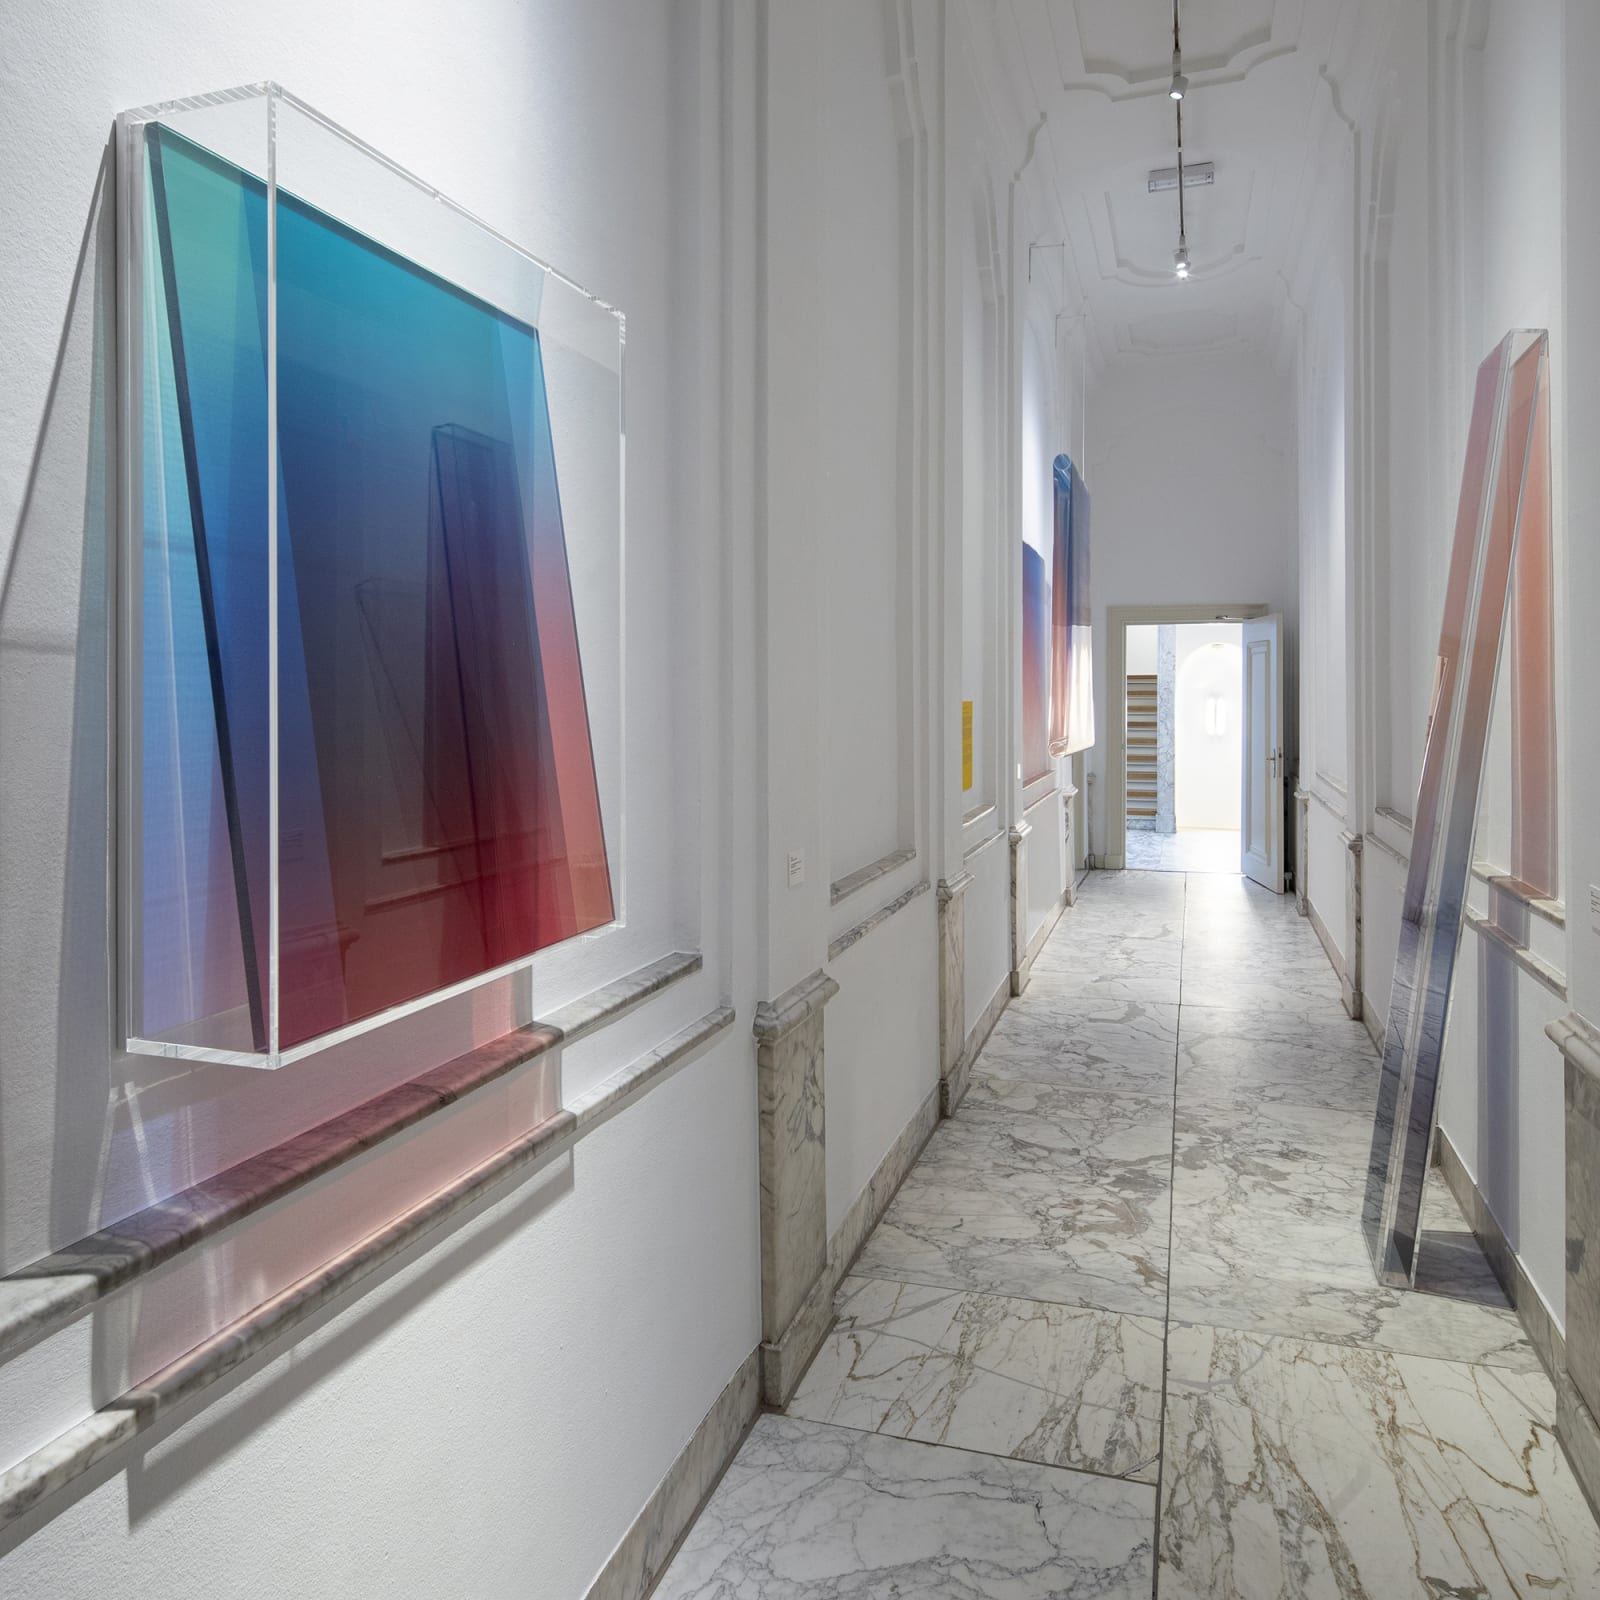 Installation View On Earth – Imaging, Technology and the Natural World, Foam Amsterdam (2020) | Photo: Studio Troika